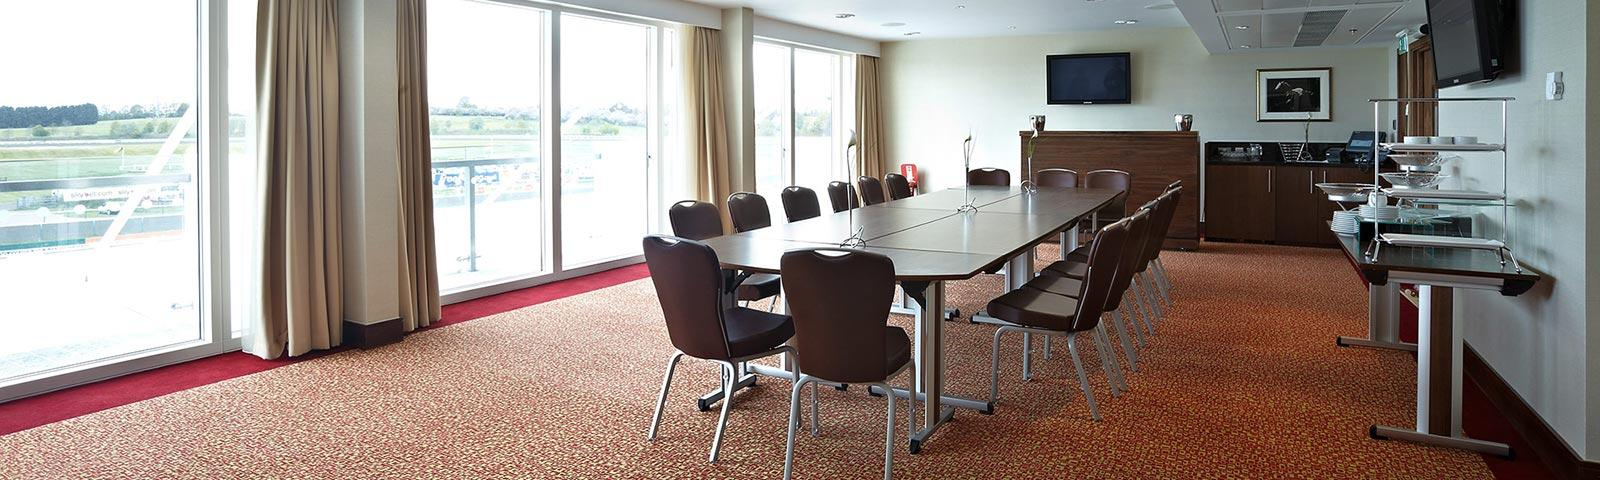 Example of a board room set up for a meeting.